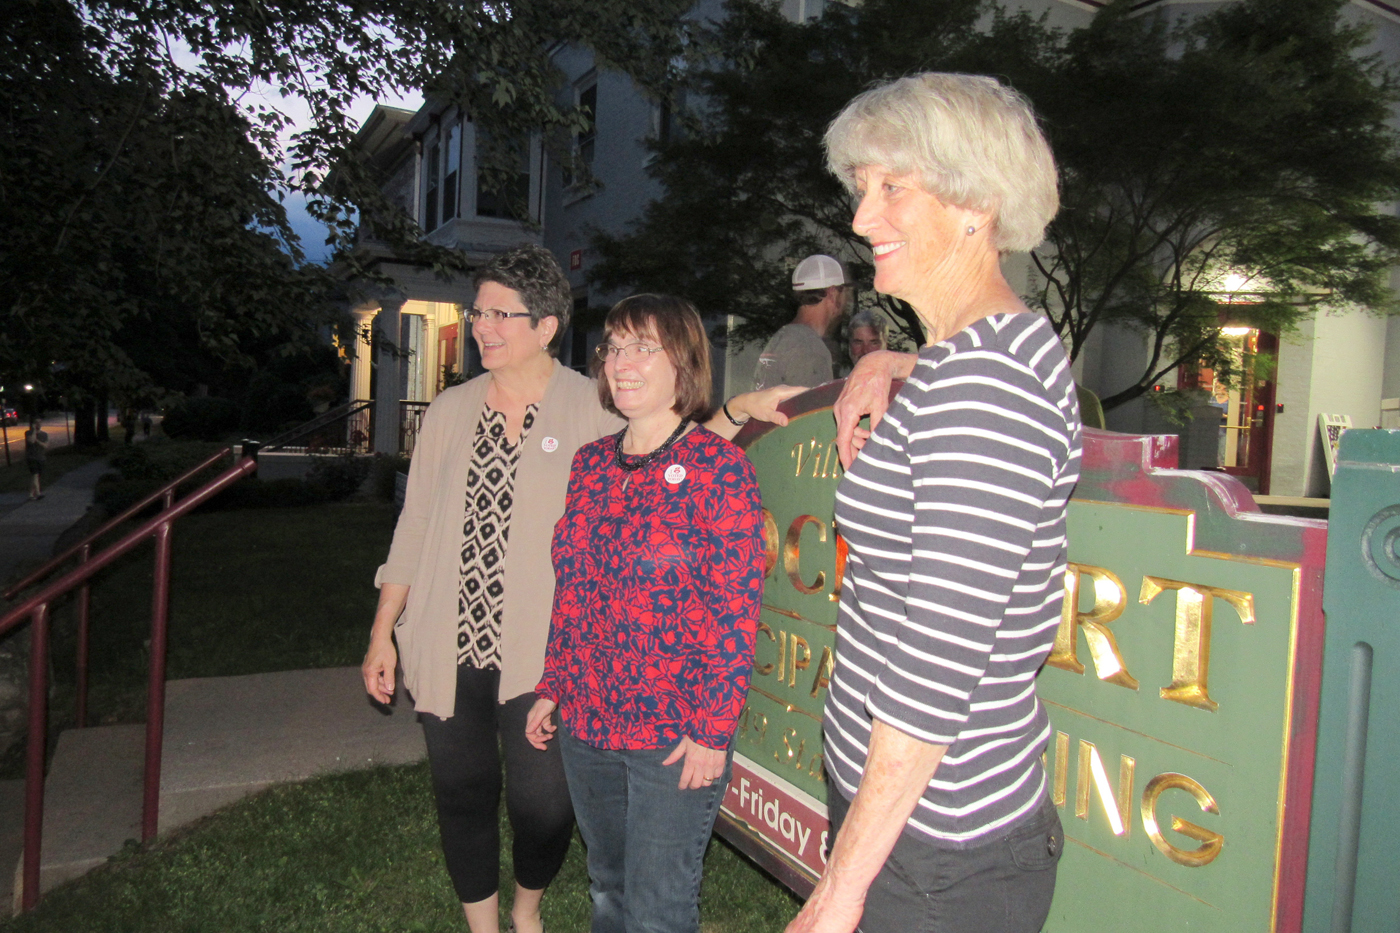 Brockport Mayor Margaret Blackman (far right) an d Trustees Katherine Kristansen and Annie Crane (center) celebrate outside the Brockport Village Hall Tuesday evening, June 20 after being returned to the village board in the 2017 election. K. Gabalski photo